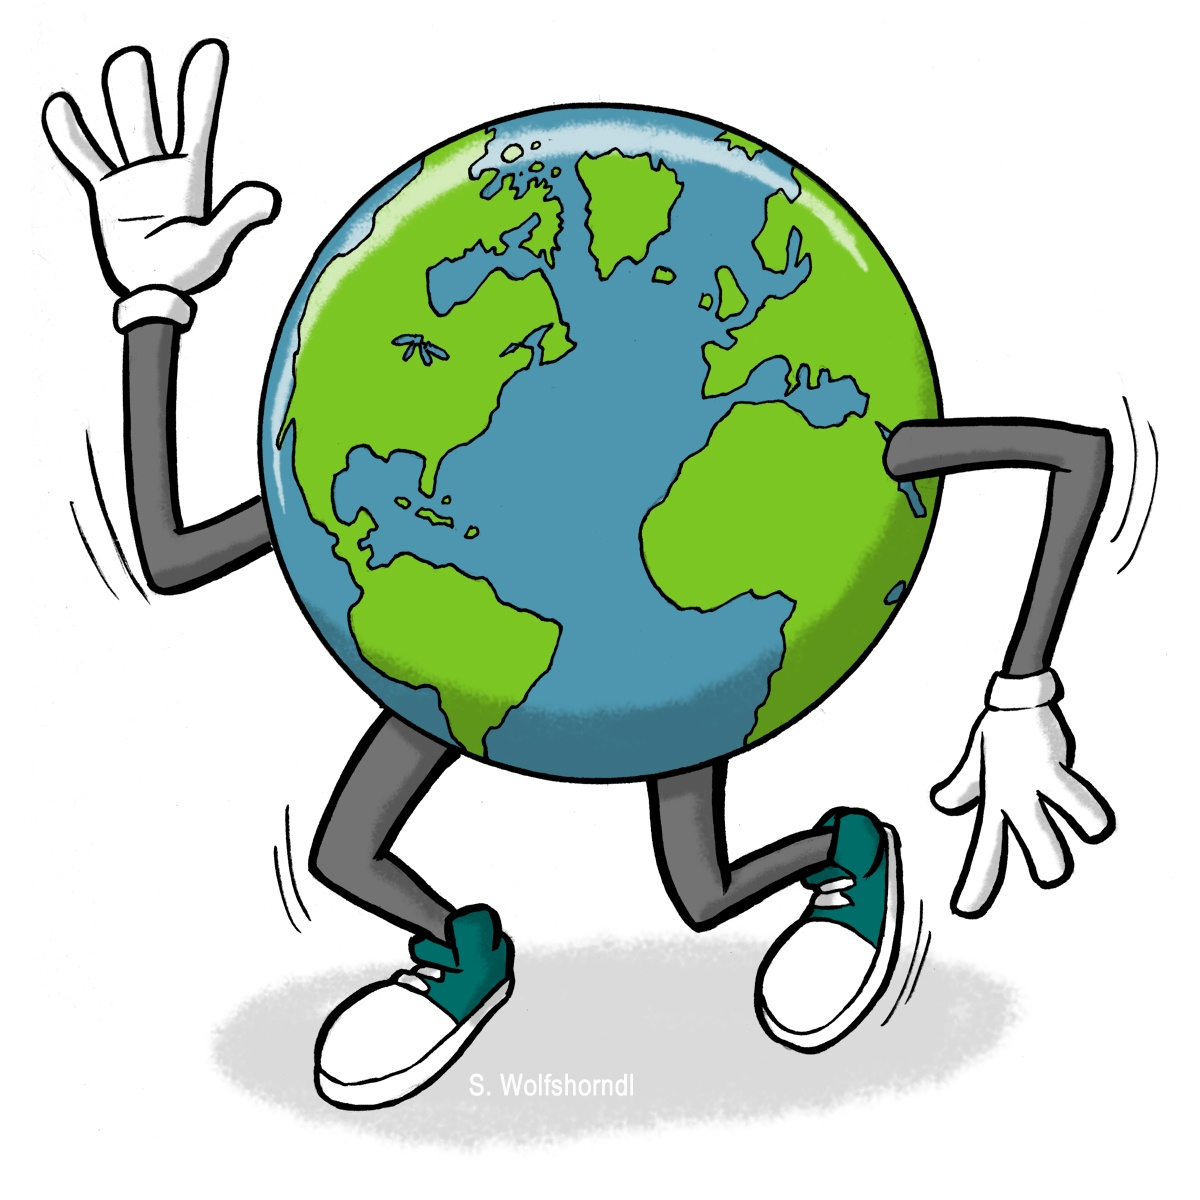 Earth day animated clipart picture free library Earth Day Animated Free Panda Images clipart free image picture free library